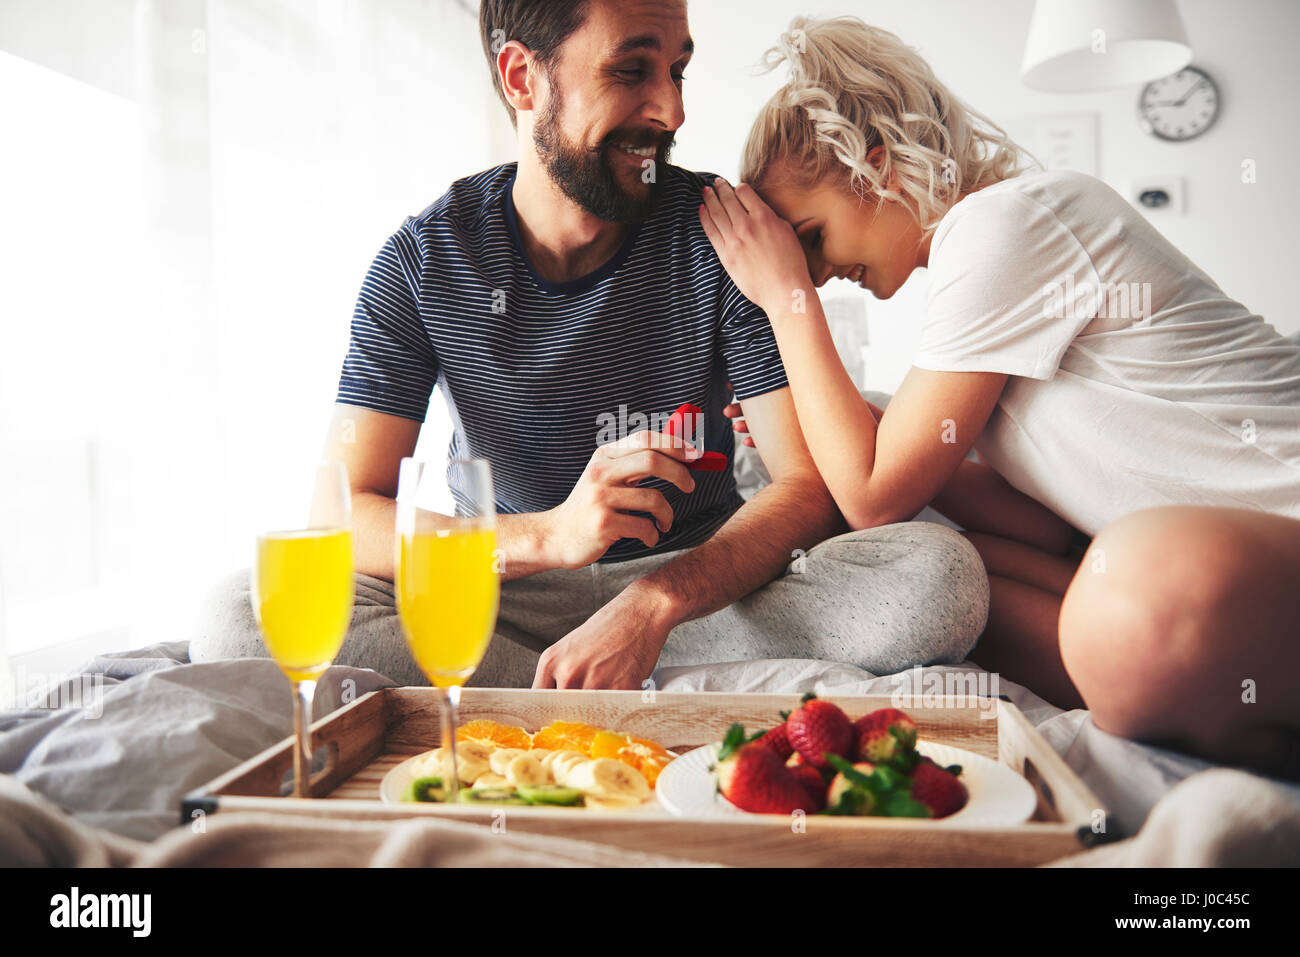 Couple sitting on bed, man proposing, holding open ring box - Stock Image